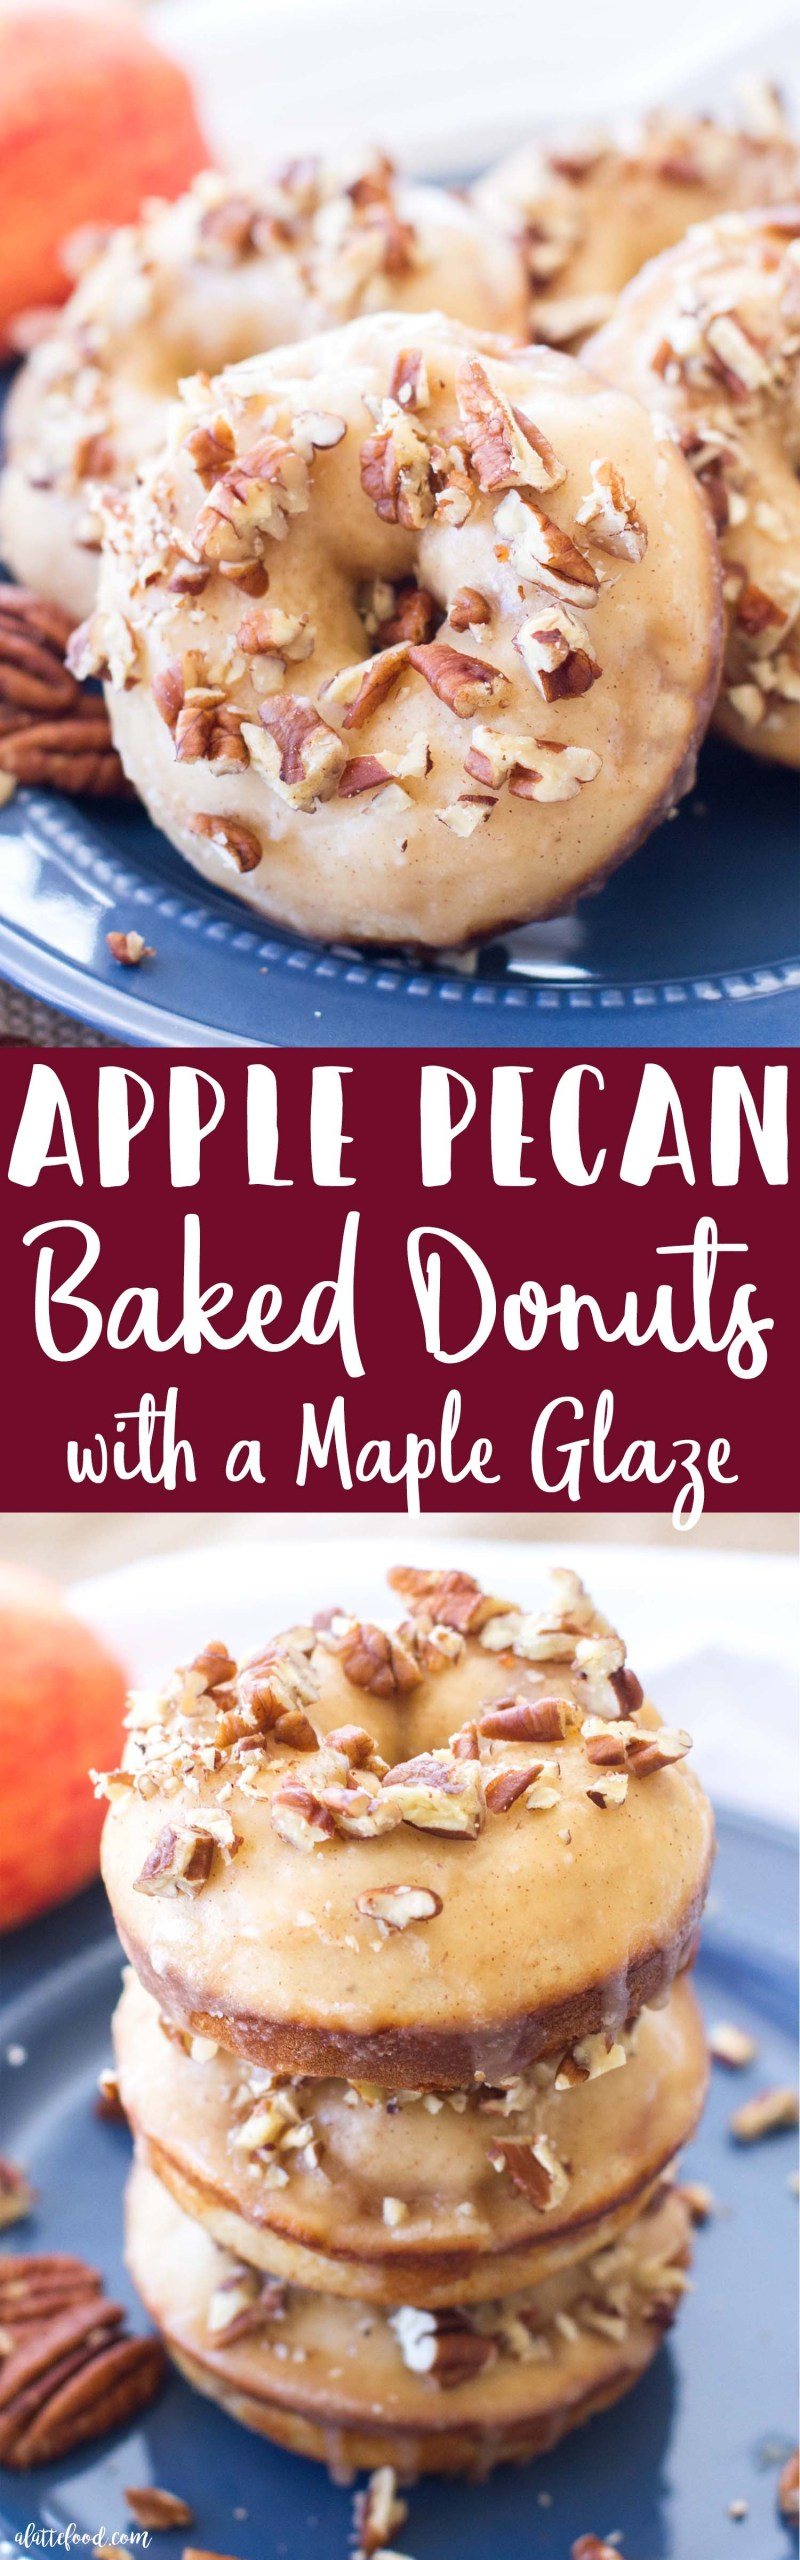 These simple baked apple donuts are filled with sweet apples and cinnamon, and topped with a maple glaze and chopped pecans! These homemade donuts taste like warm apple pie with a sweet maple glaze!